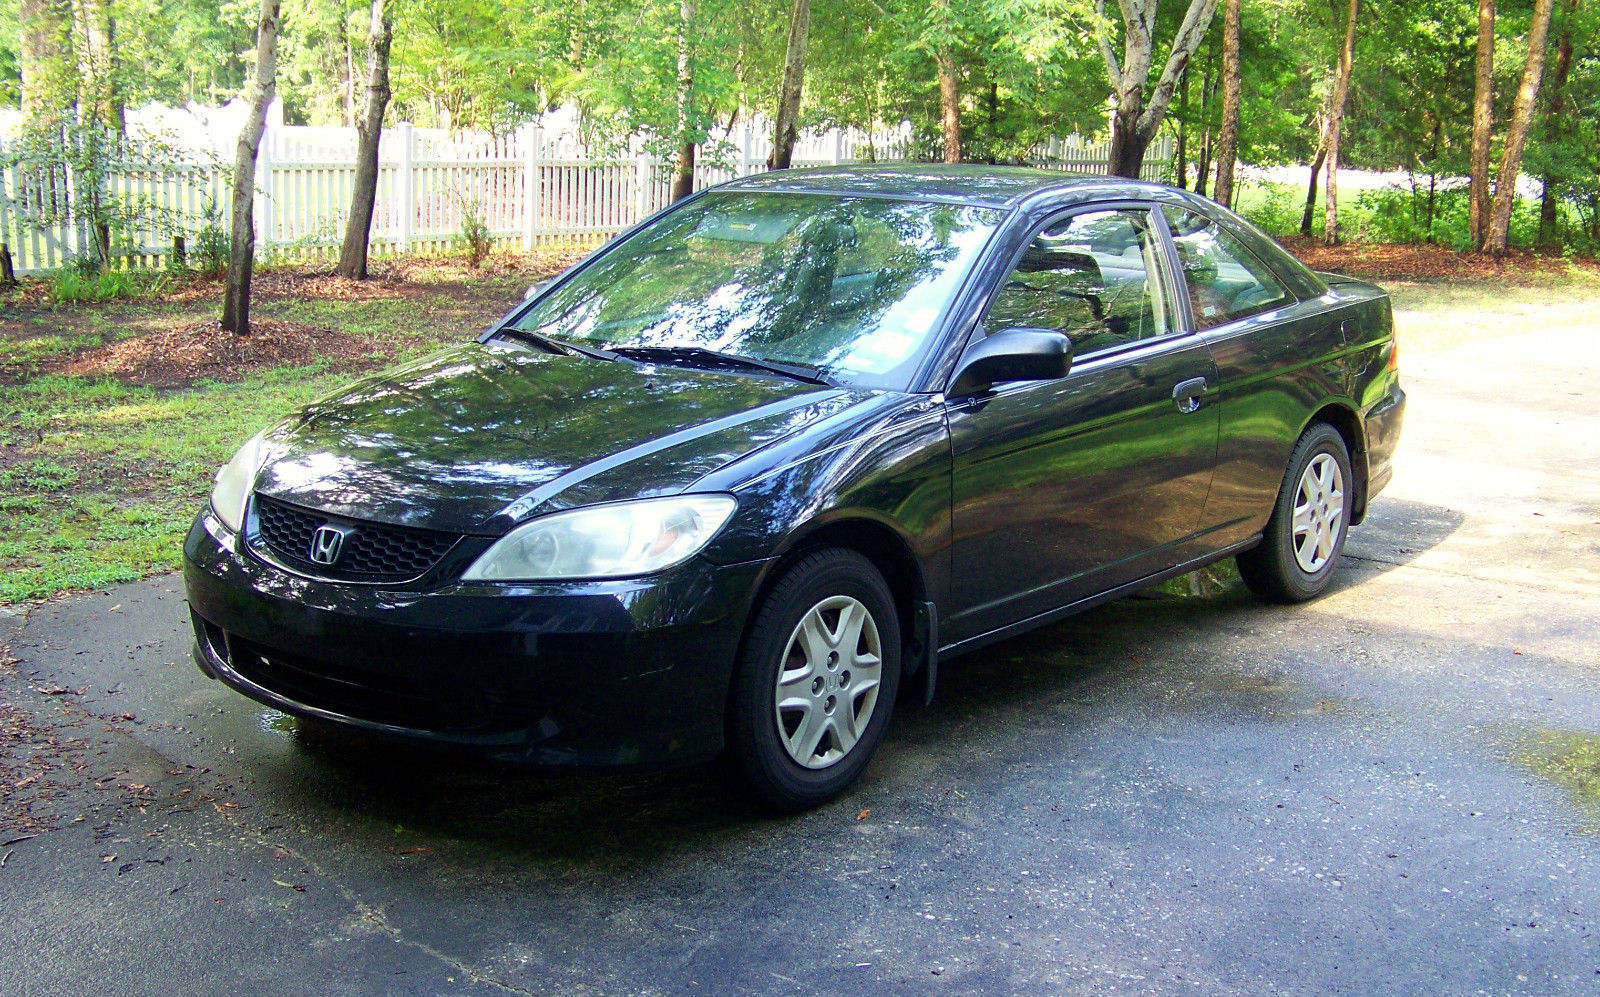 Awesome 2005 Honda Civic This Car Completely Re Built Dx The Best Fuel Mileage Mpg 36 City 42 Highway 2019